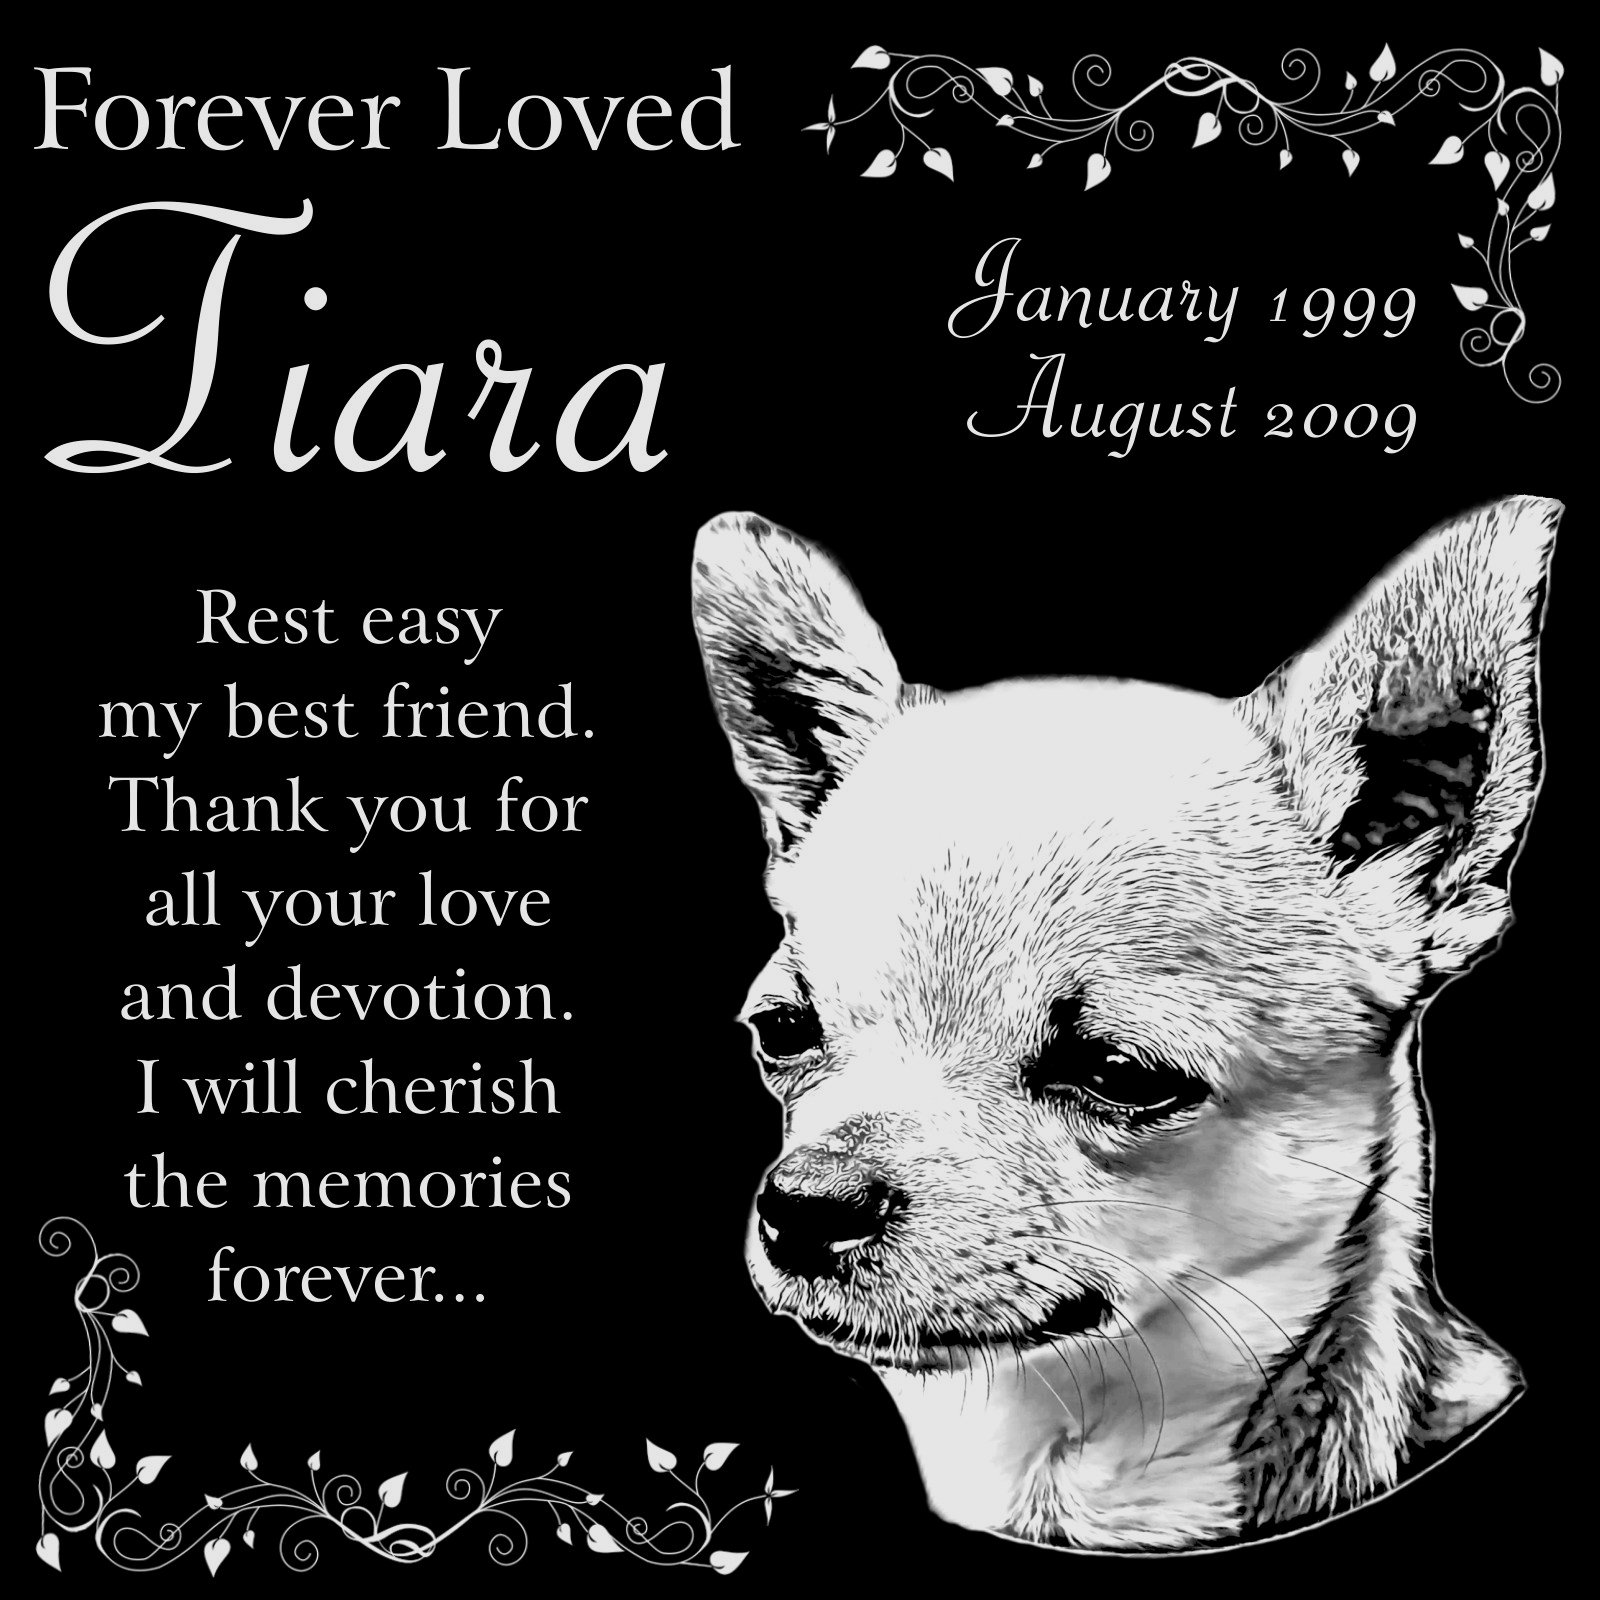 Personalized Chihuahua Dog Pet Memorial 12''x12'' Engraved Black Granite Grave Marker Head Stone Plaque TIA1